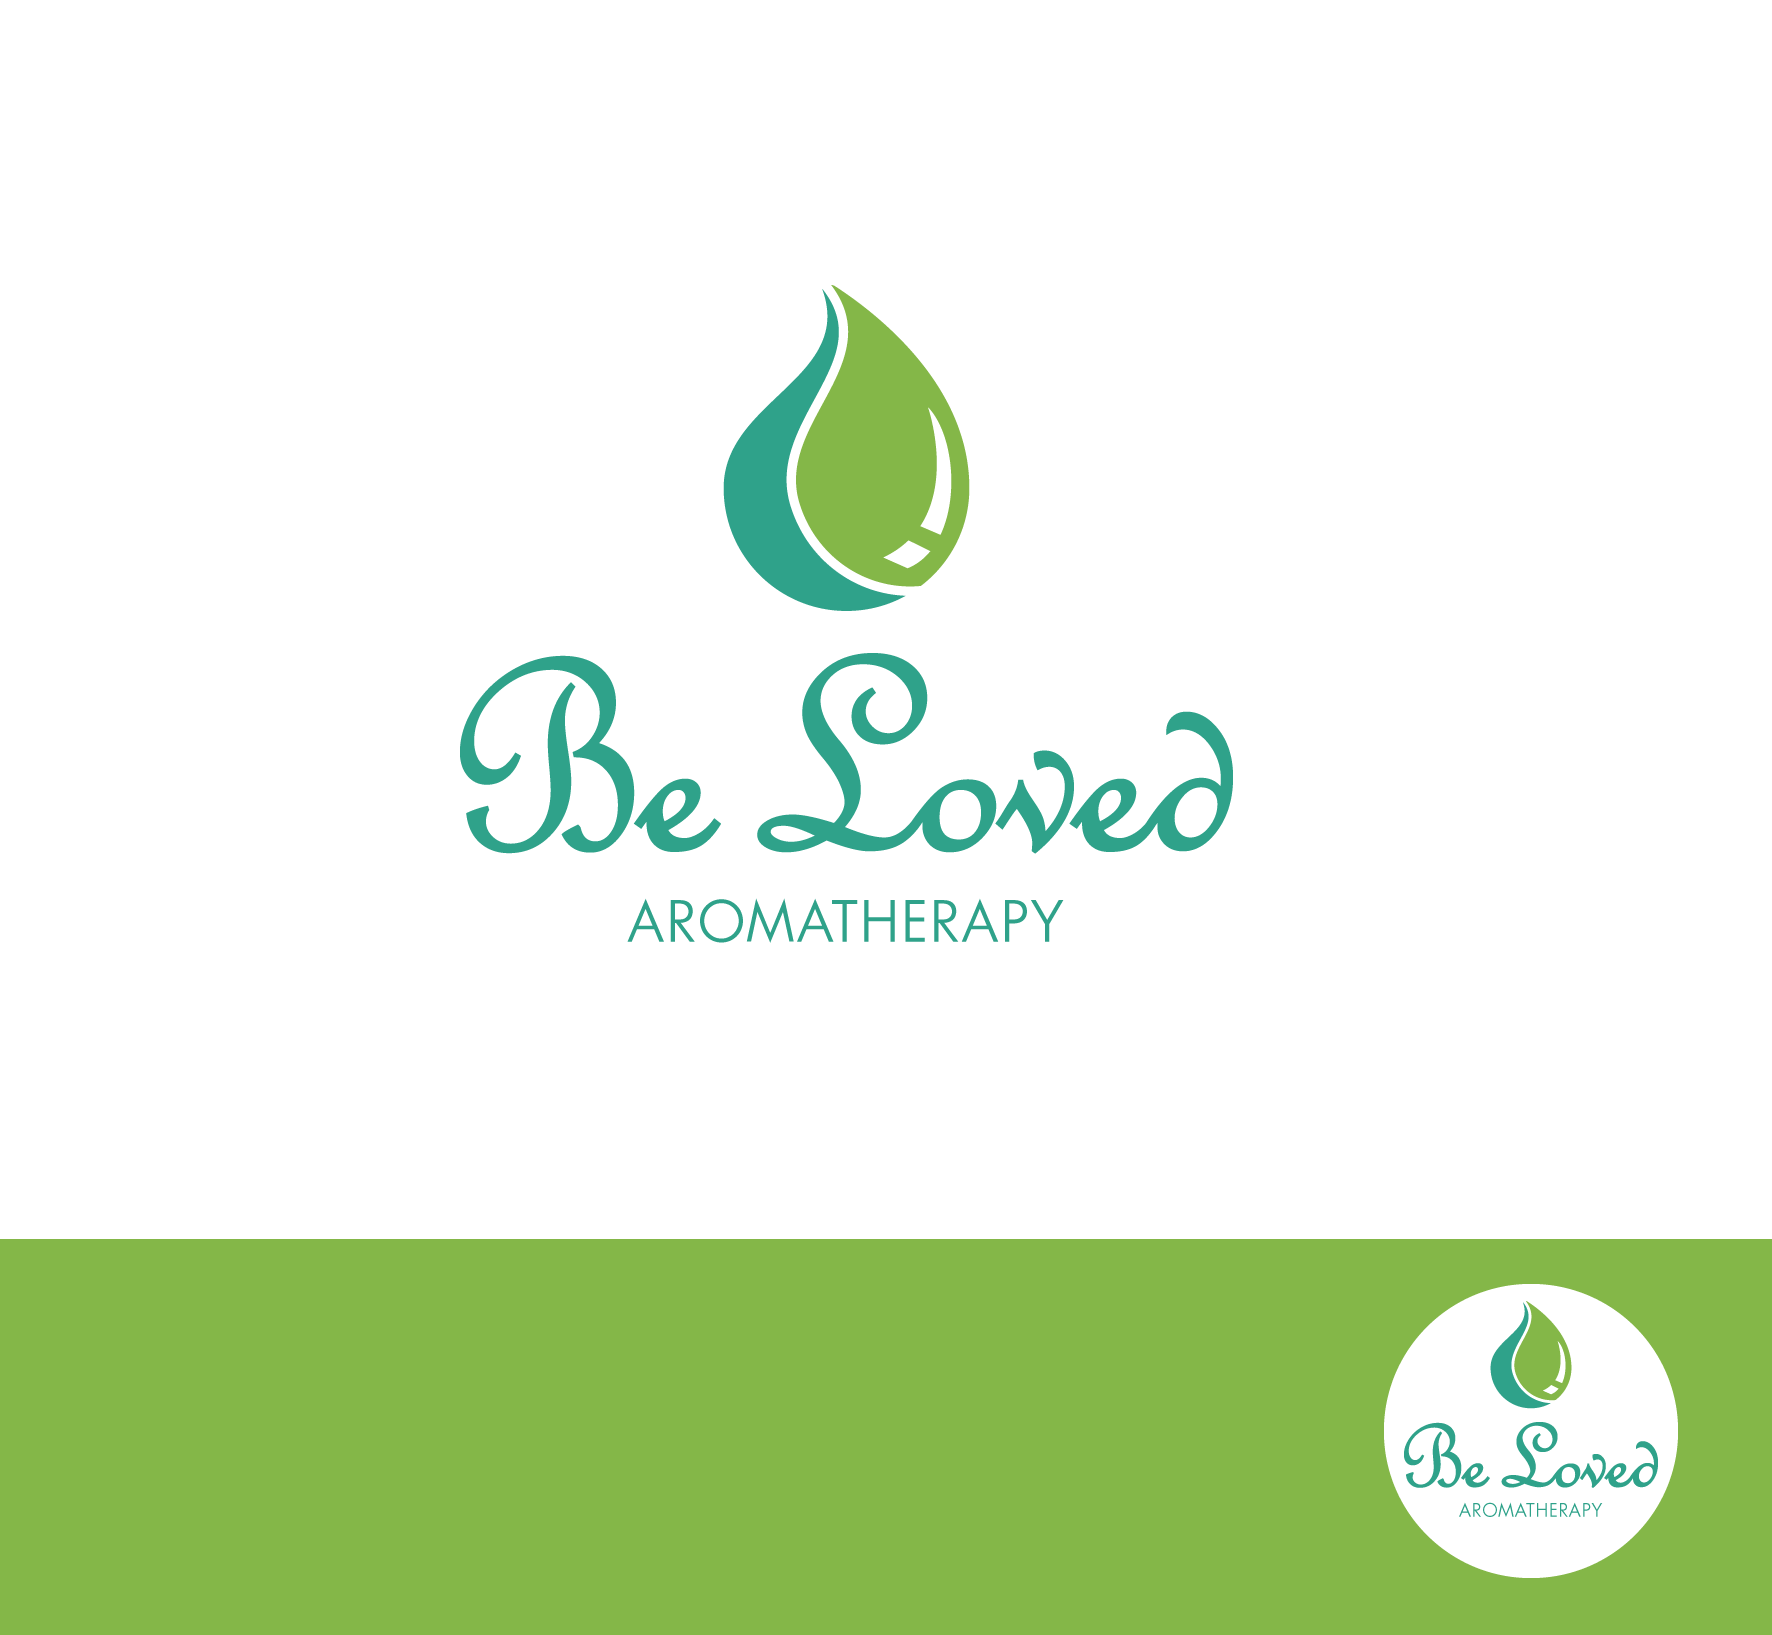 Logo Design by luna - Entry No. 58 in the Logo Design Contest Fun Logo Design for Be Loved Aromatherapy.